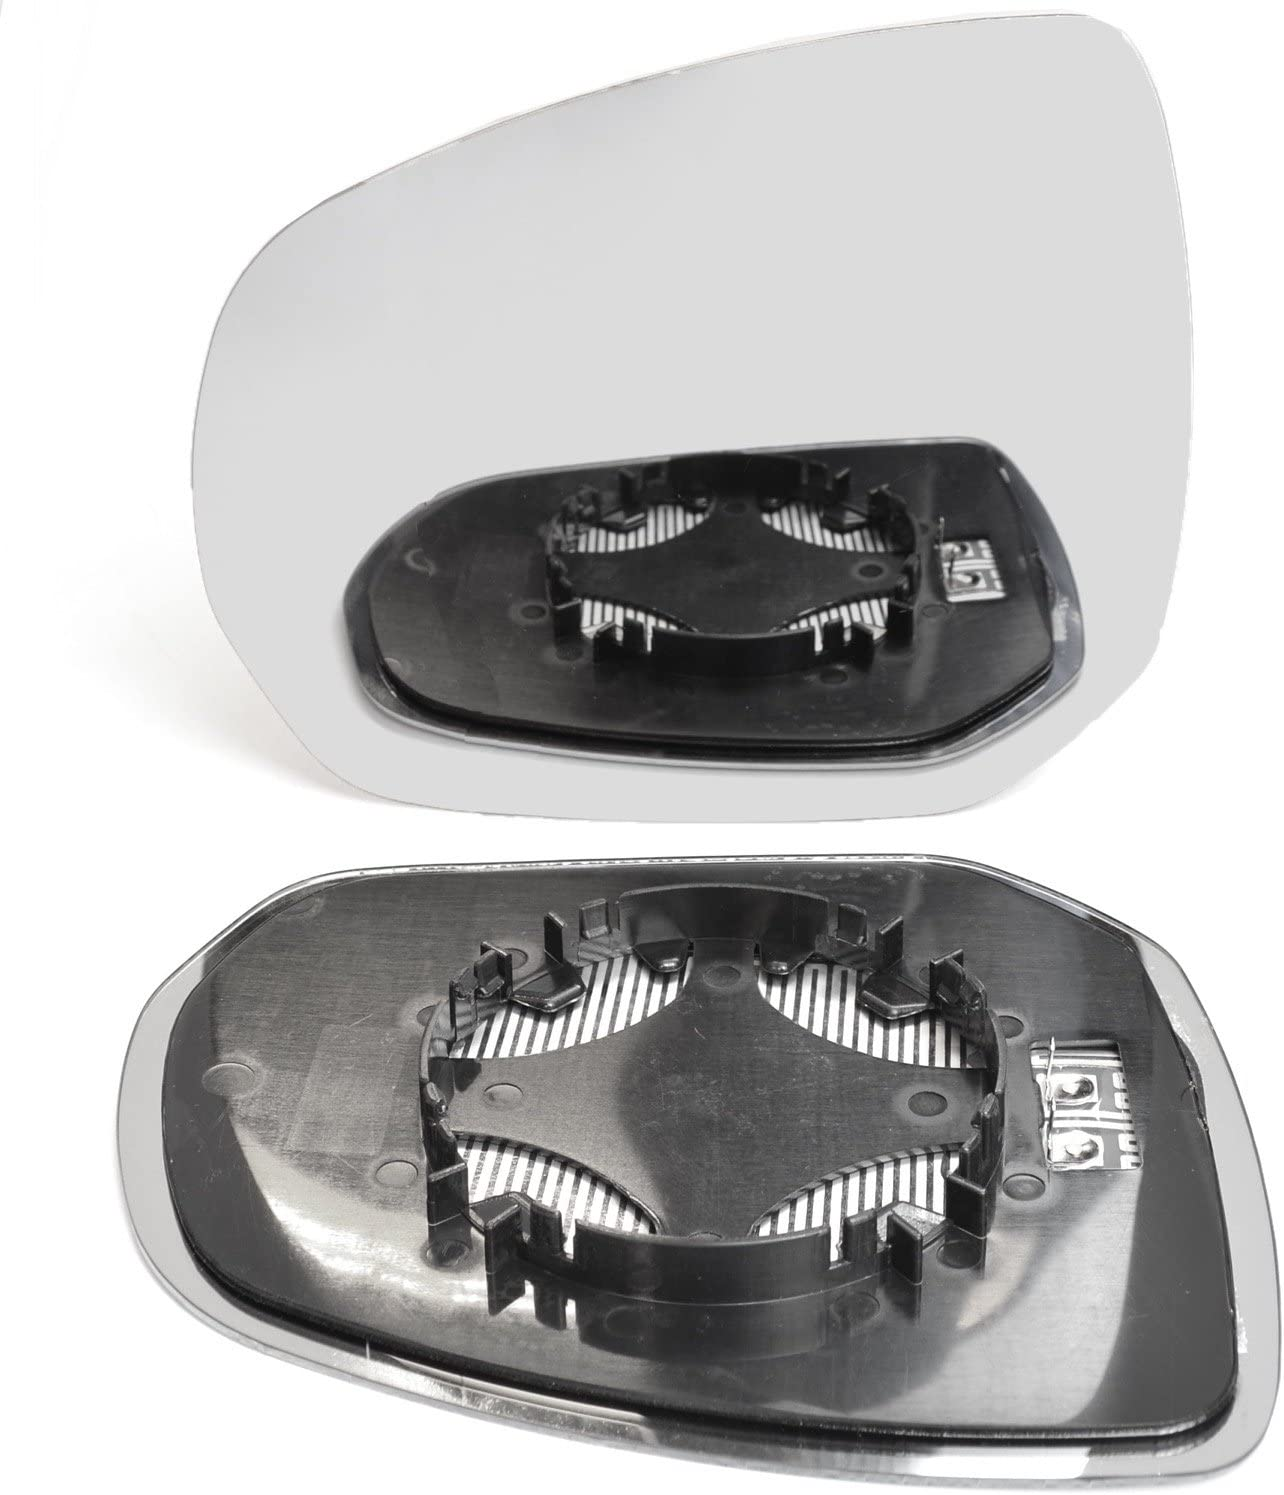 Left passegner side wing door clip on mirror glass for Citroen C3 Picasso 2004-2009 Heated